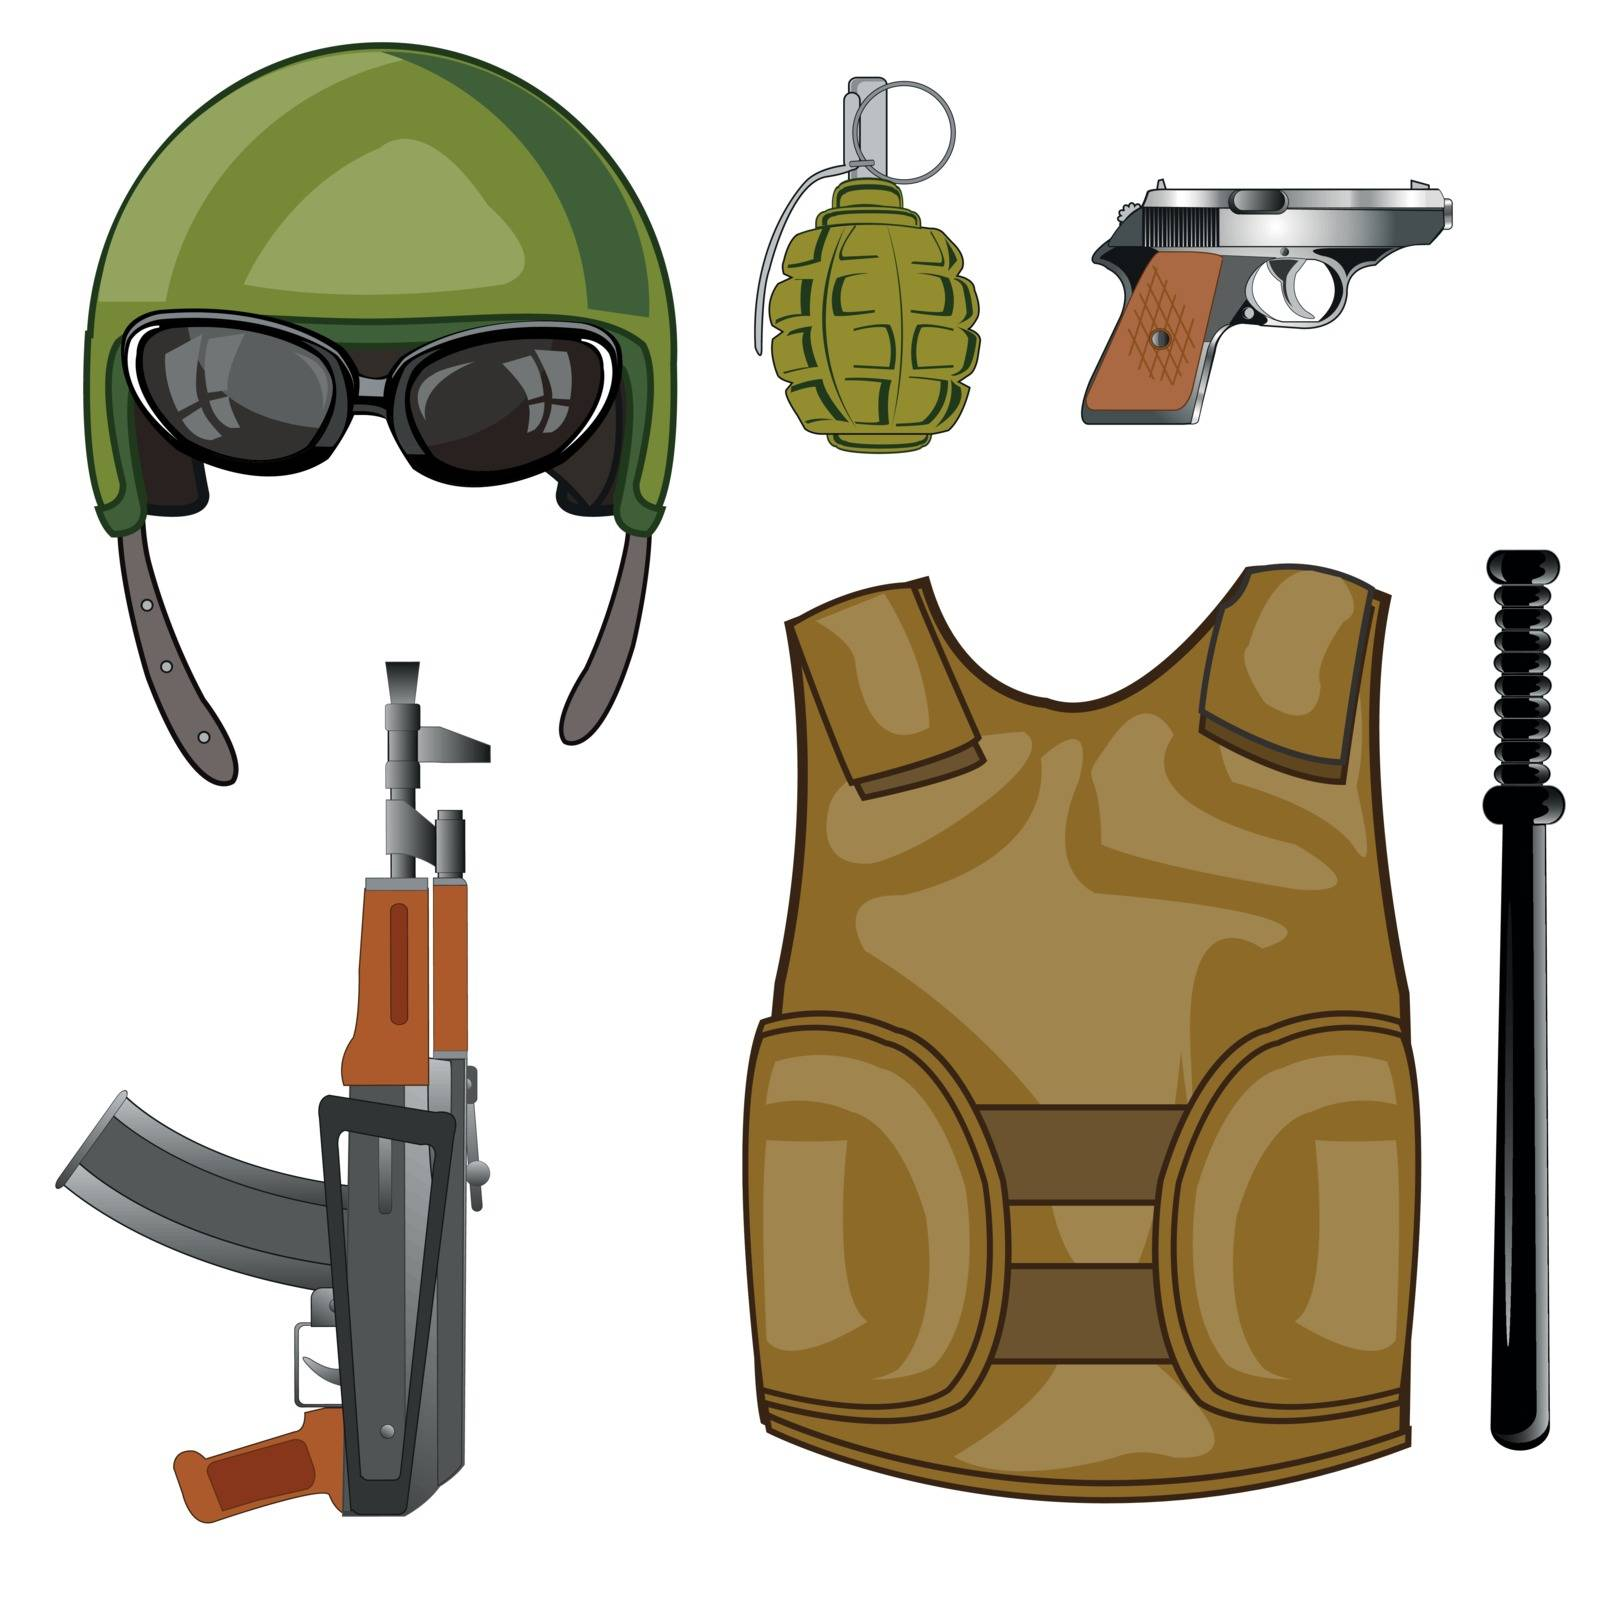 Equipment and weapon military by cobol1964